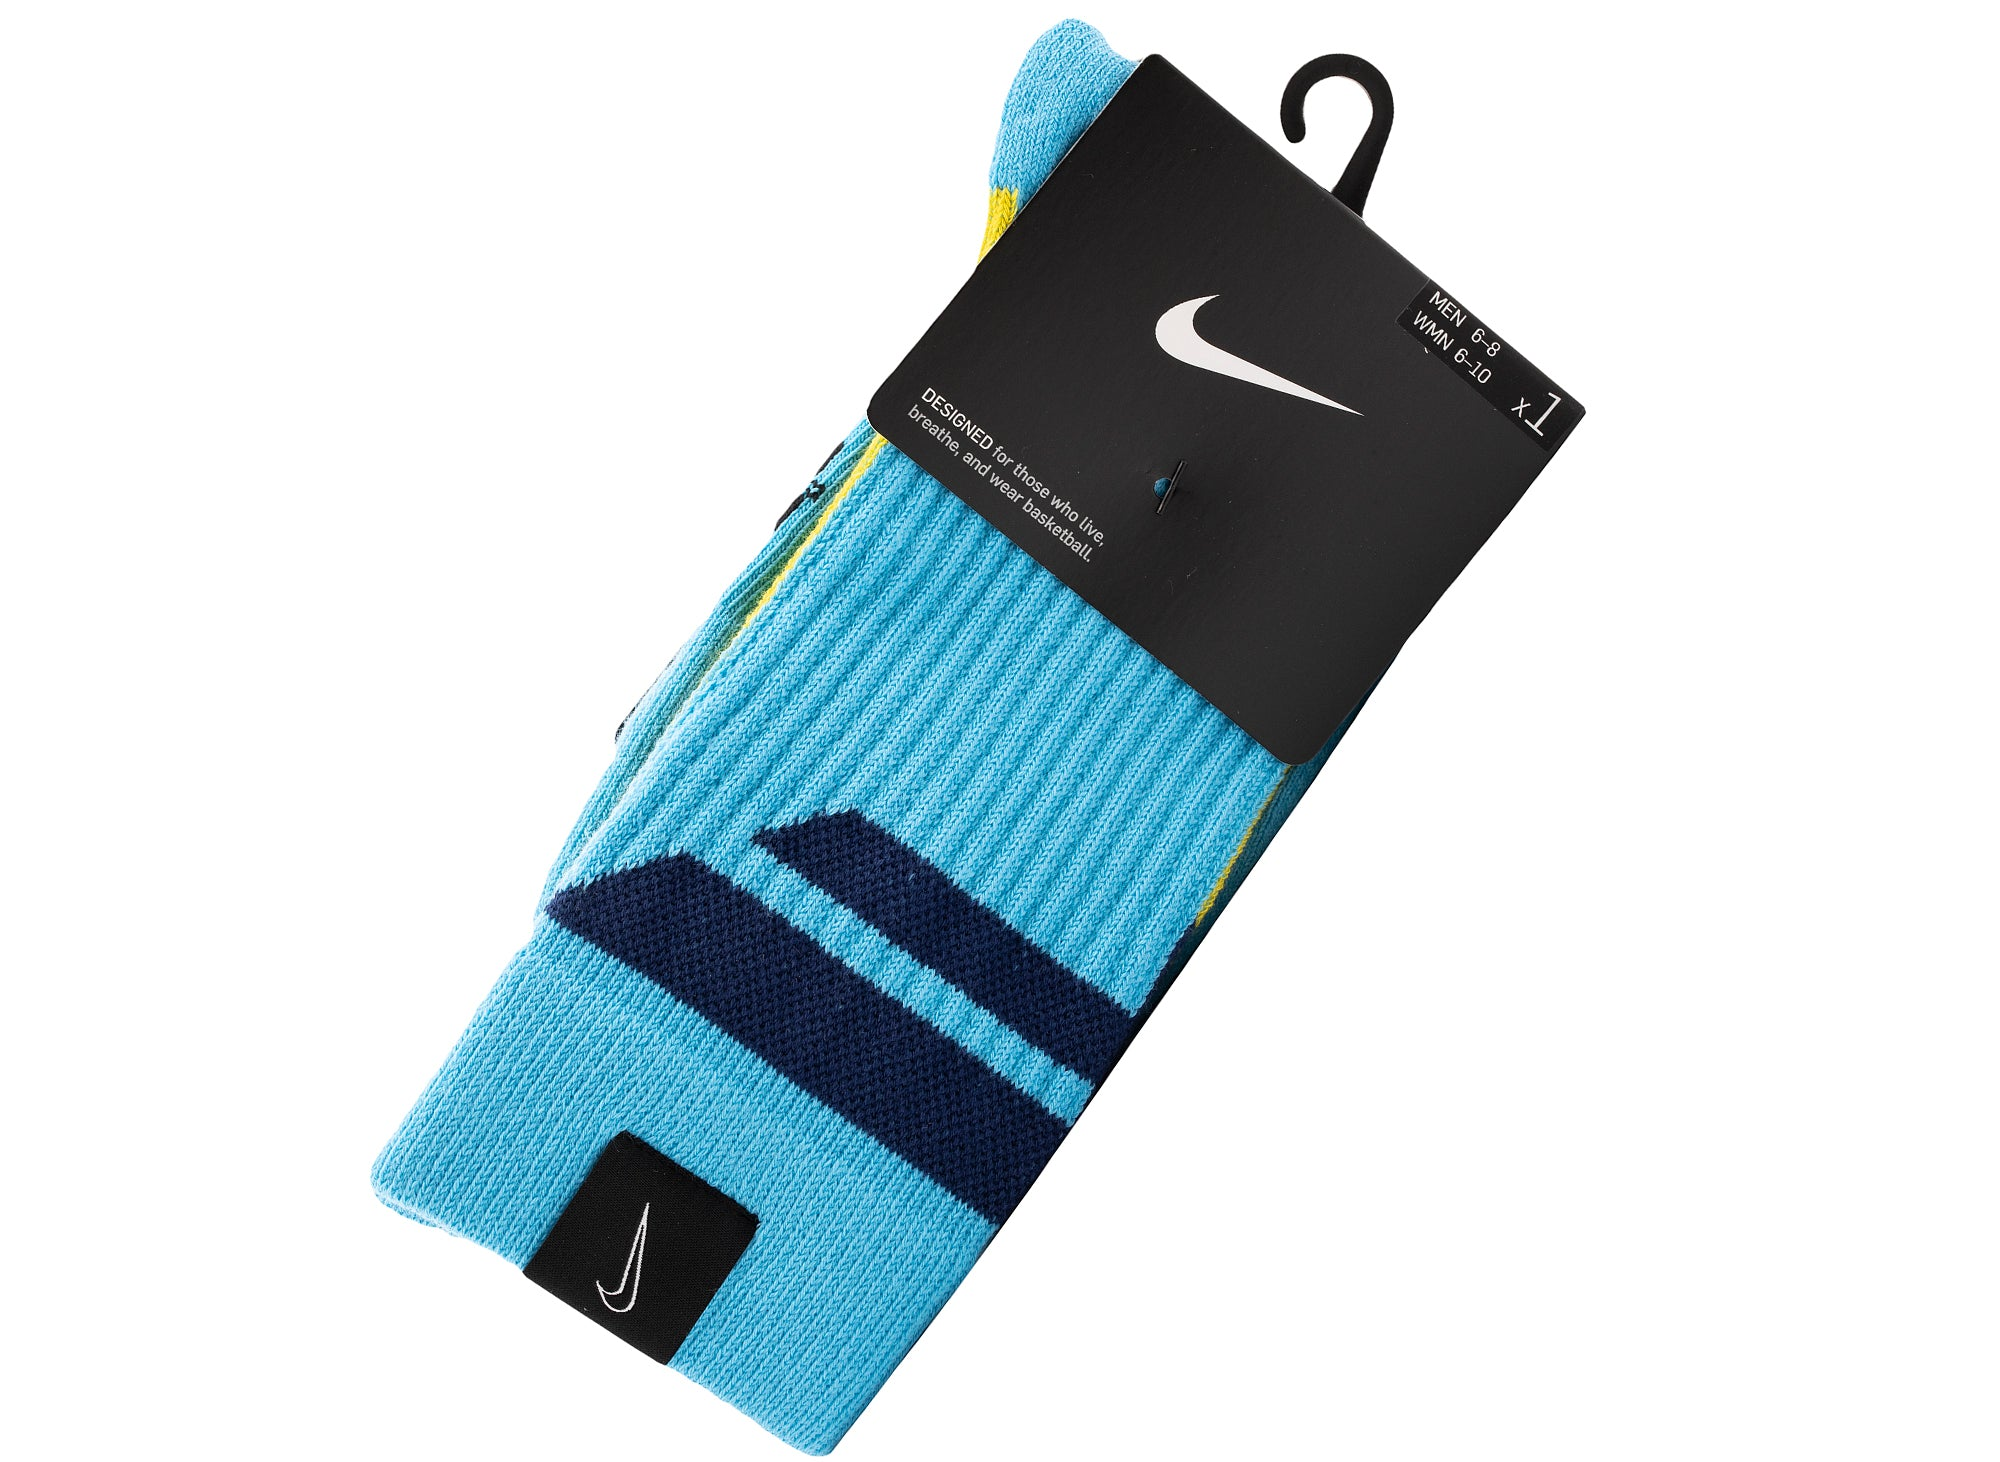 Nike SNKR Crew City Sox in Blue